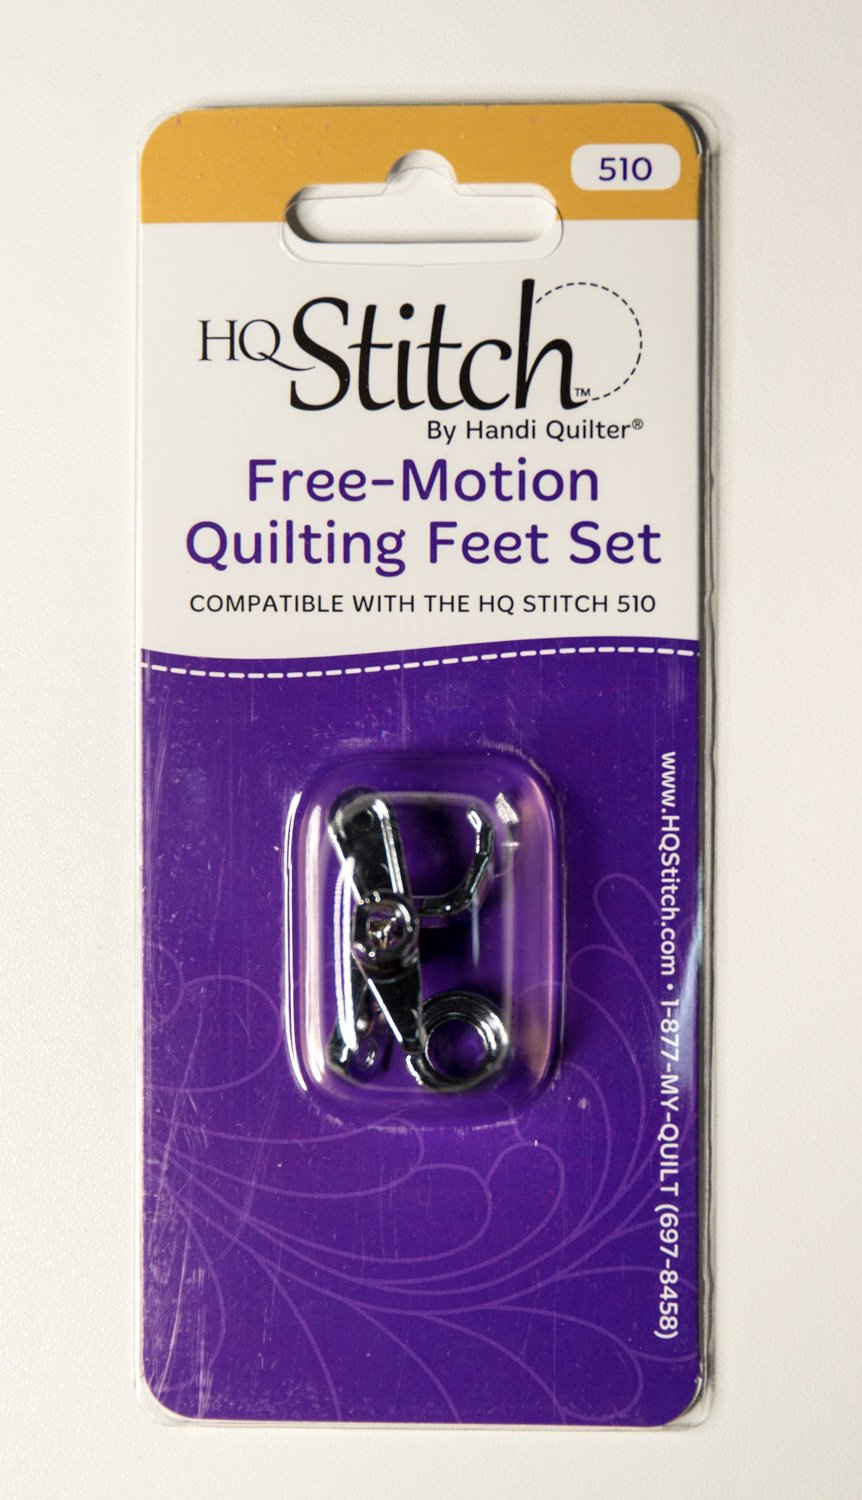 Specialized Free Motion Quilting Feet Set for HQ Stitch Machines